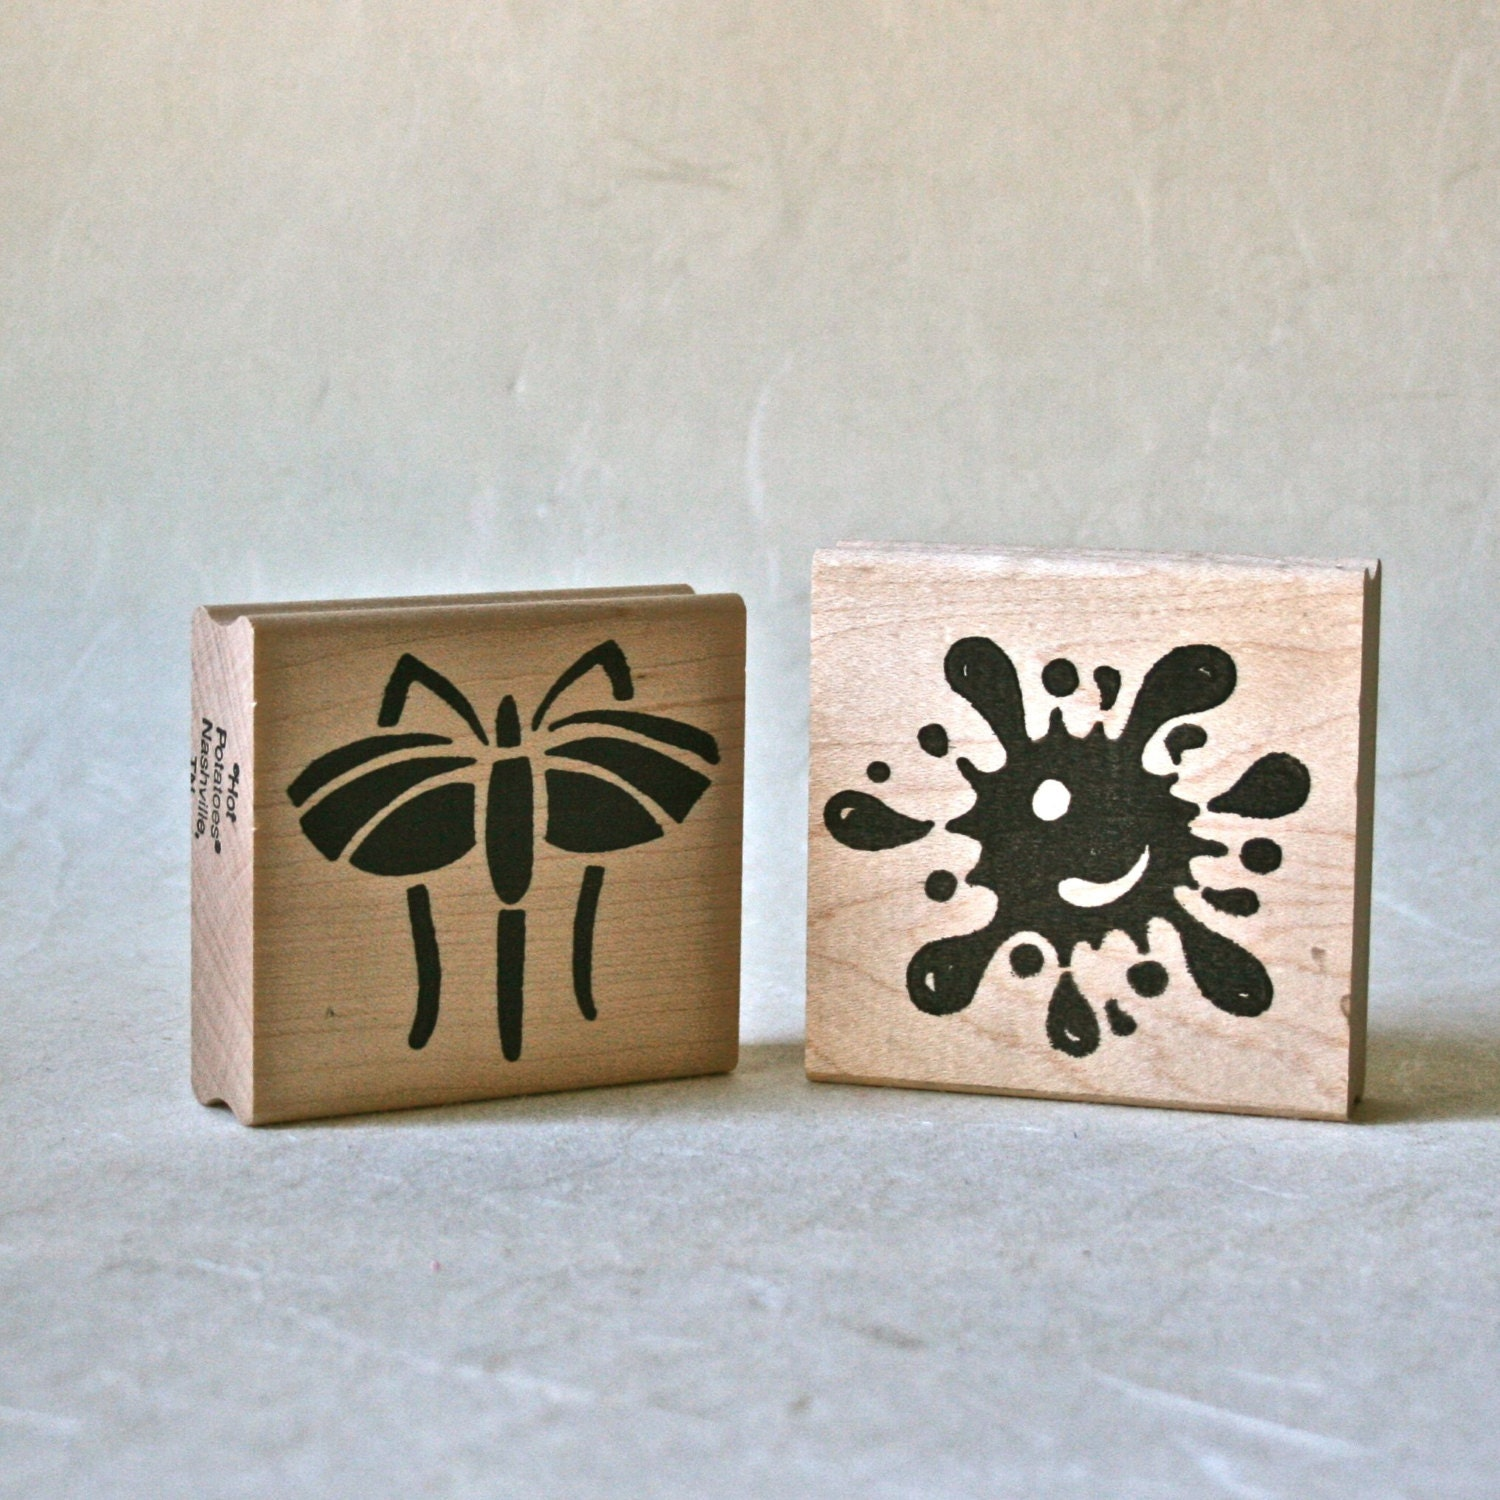 Mosquito and Splat Rubber Stamp Blocks New for Card Making